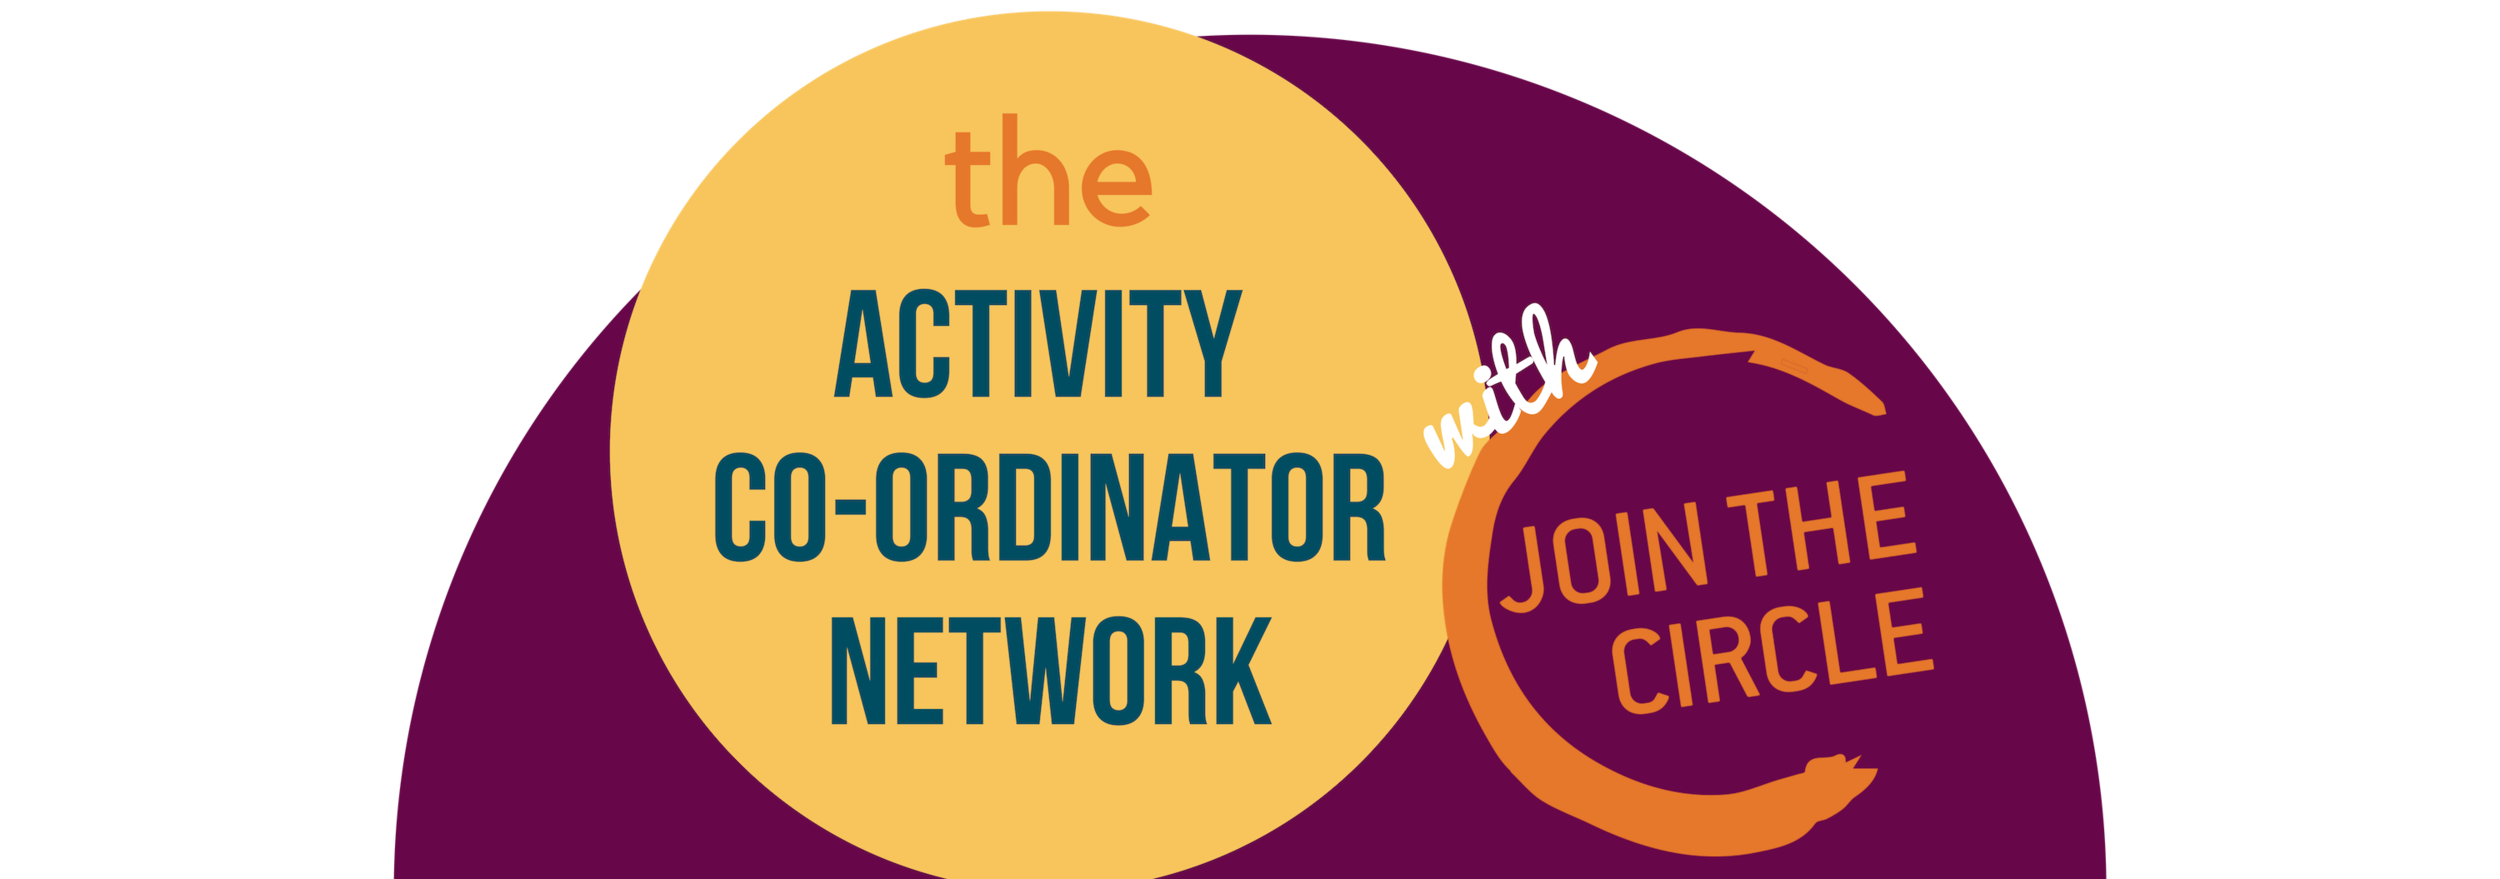 activity co-ordinator network.png